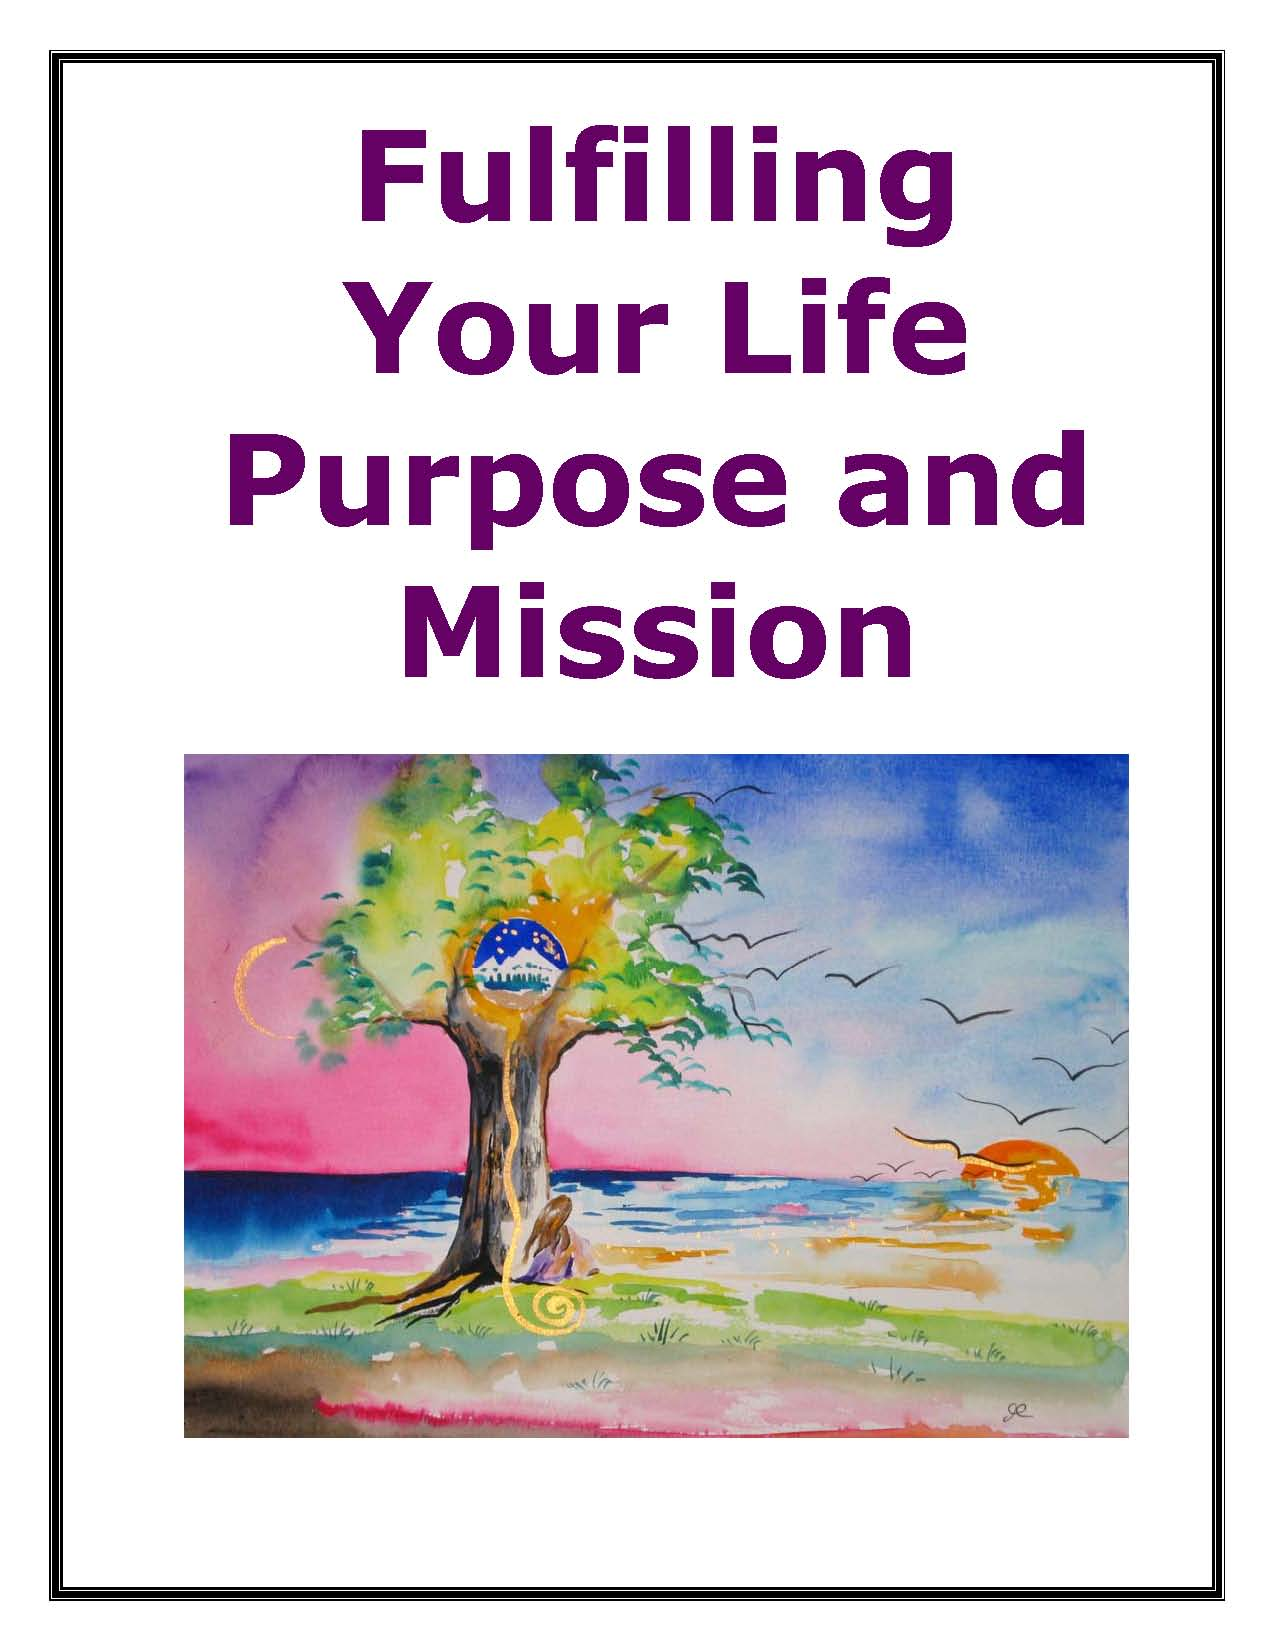 Fulfilling Your Life Purpose and Mission